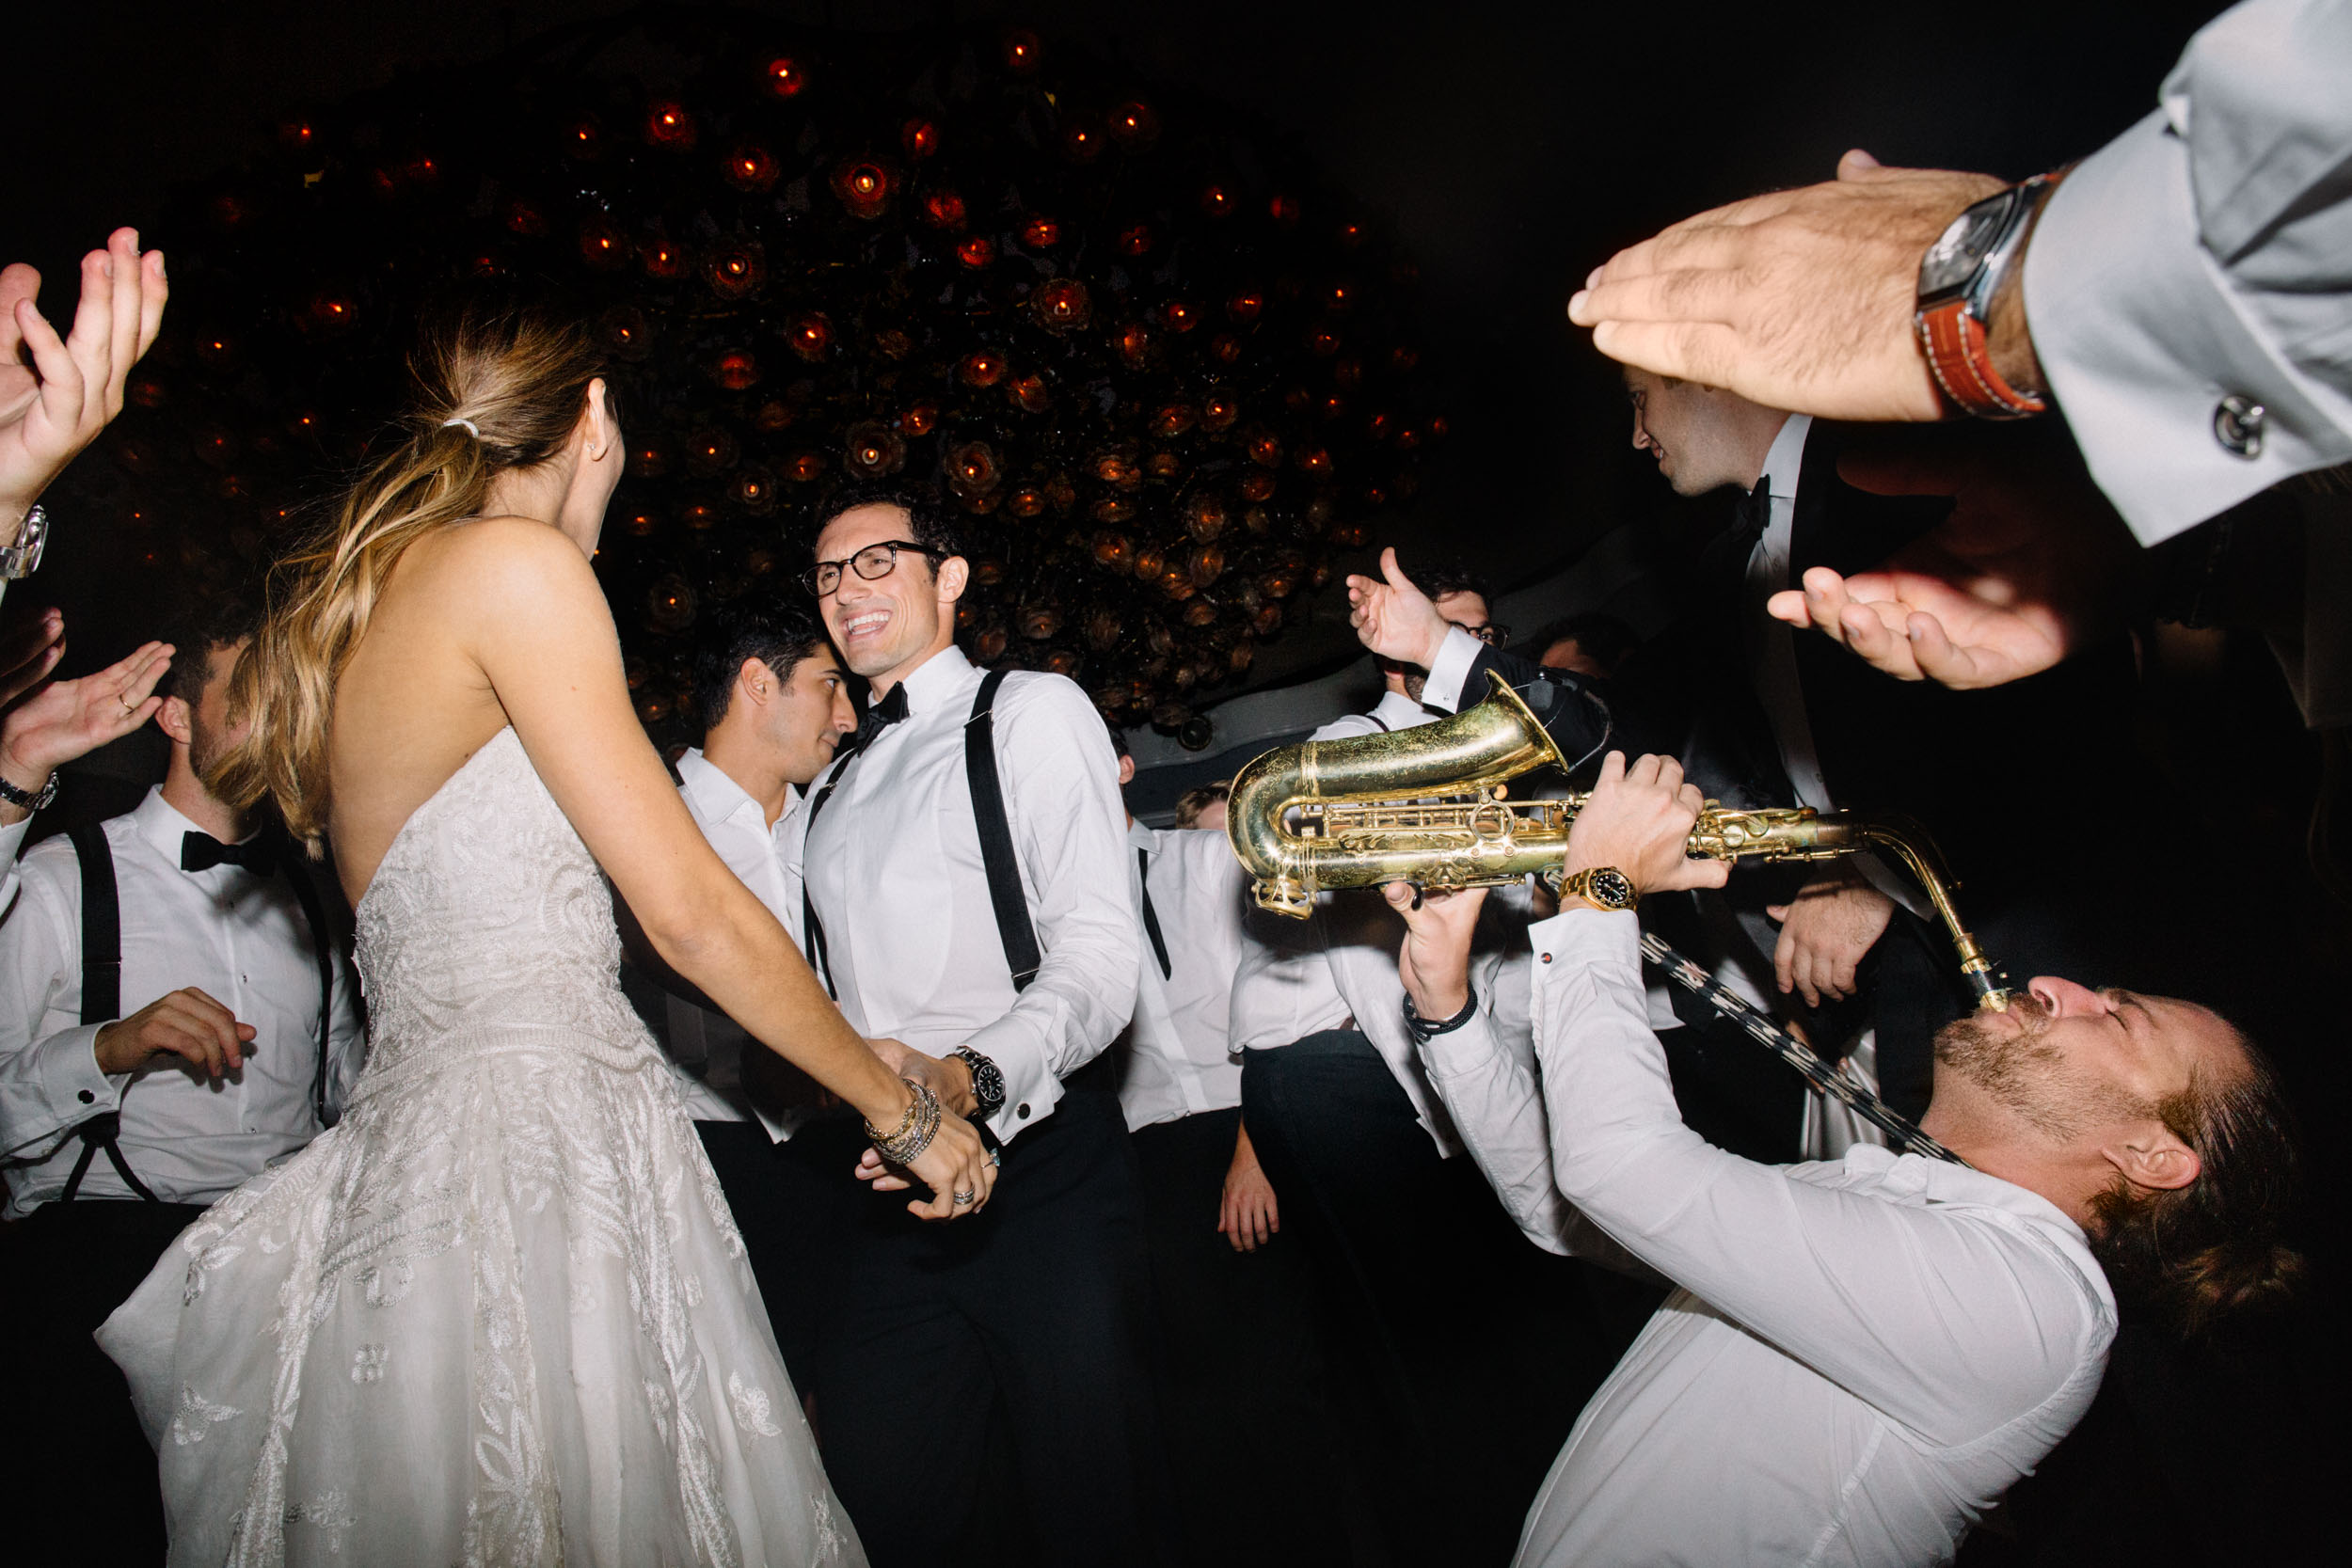 Wedding+Dance+Floor+The+Beverly+Hills+Hotel.jpg